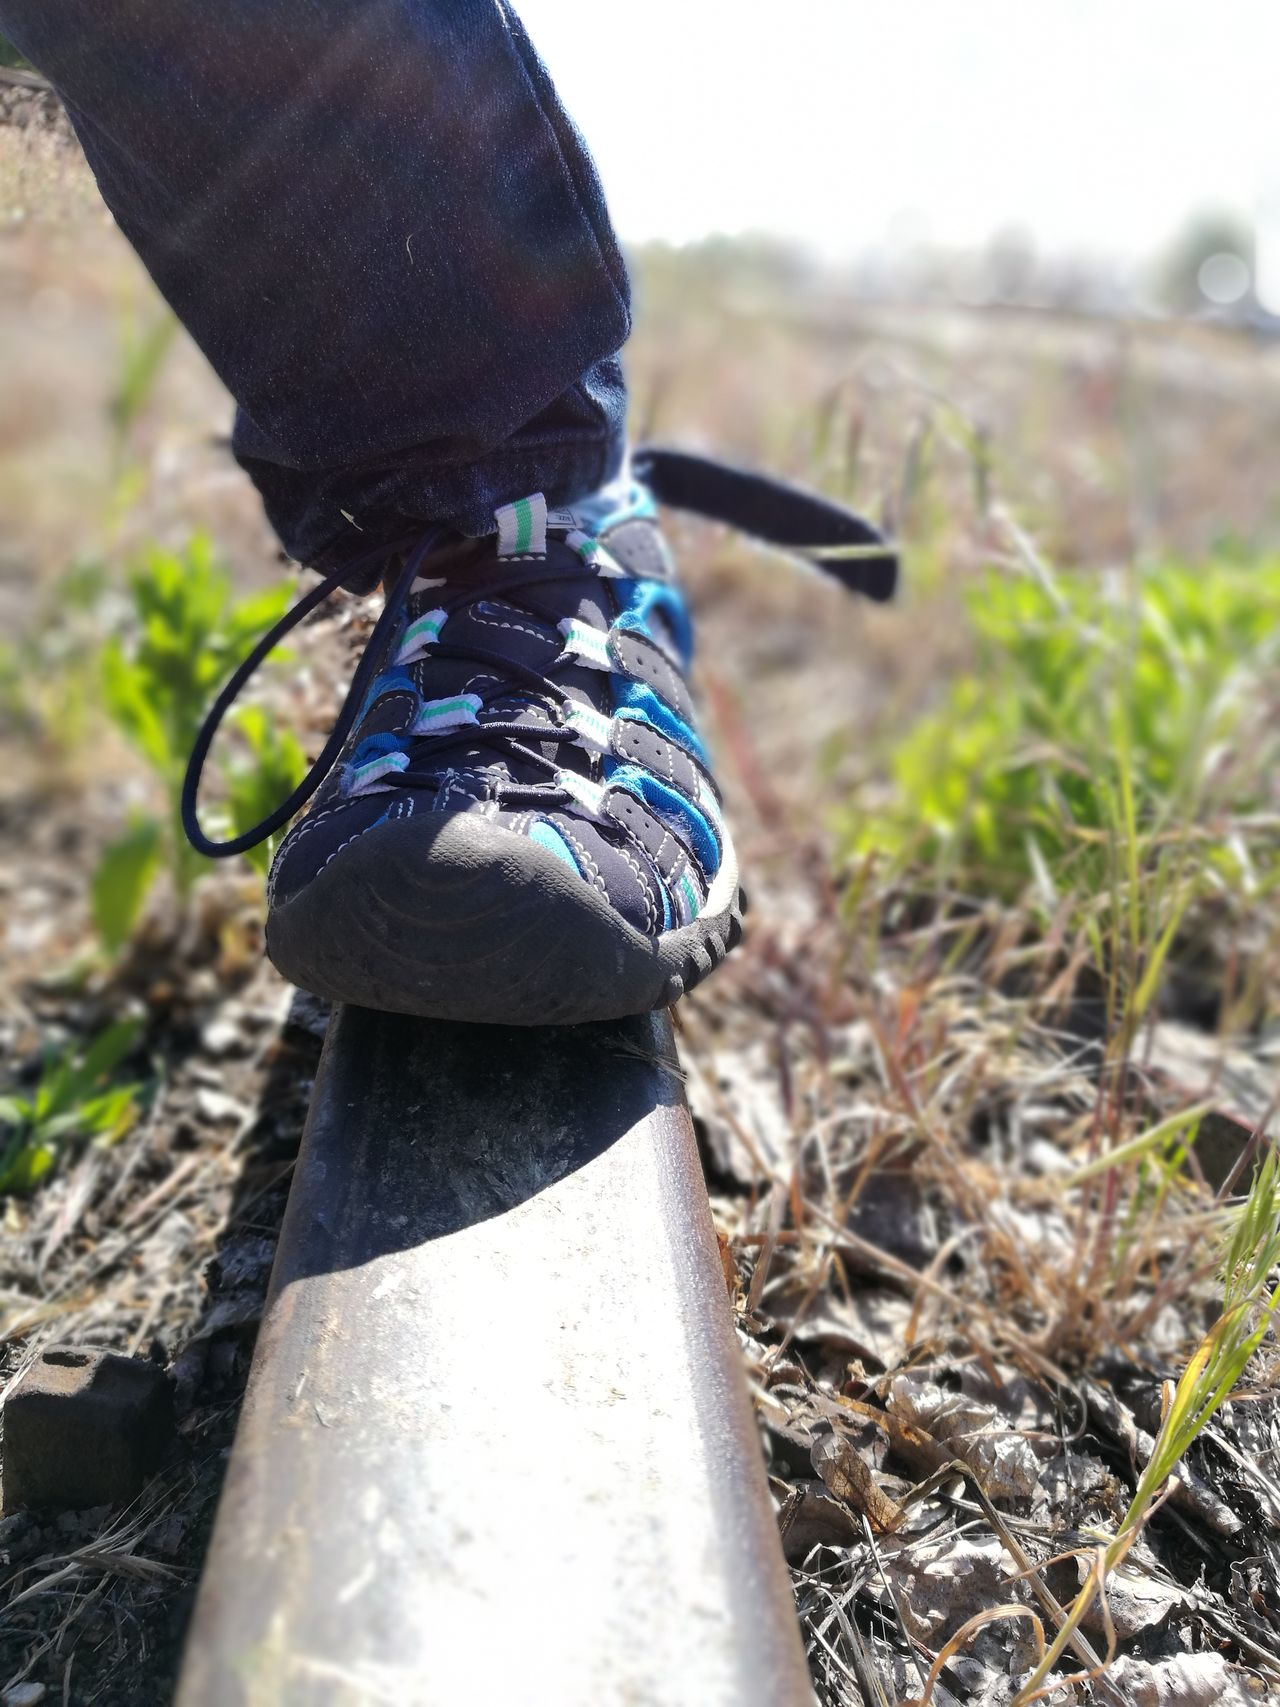 Focus On Foreground Day Outdoors No People Close-up Grass Rail Train LINE Weedy Young Adult Out Of Order Standing Summer Low Section Human Body Part Cropped Body The Purist (no Edit, No Filter) Shoe Hiking Sandal Childhood The Great Outdoors - 2017 EyeEm Awards Out Of The Box Let's Go. Together.